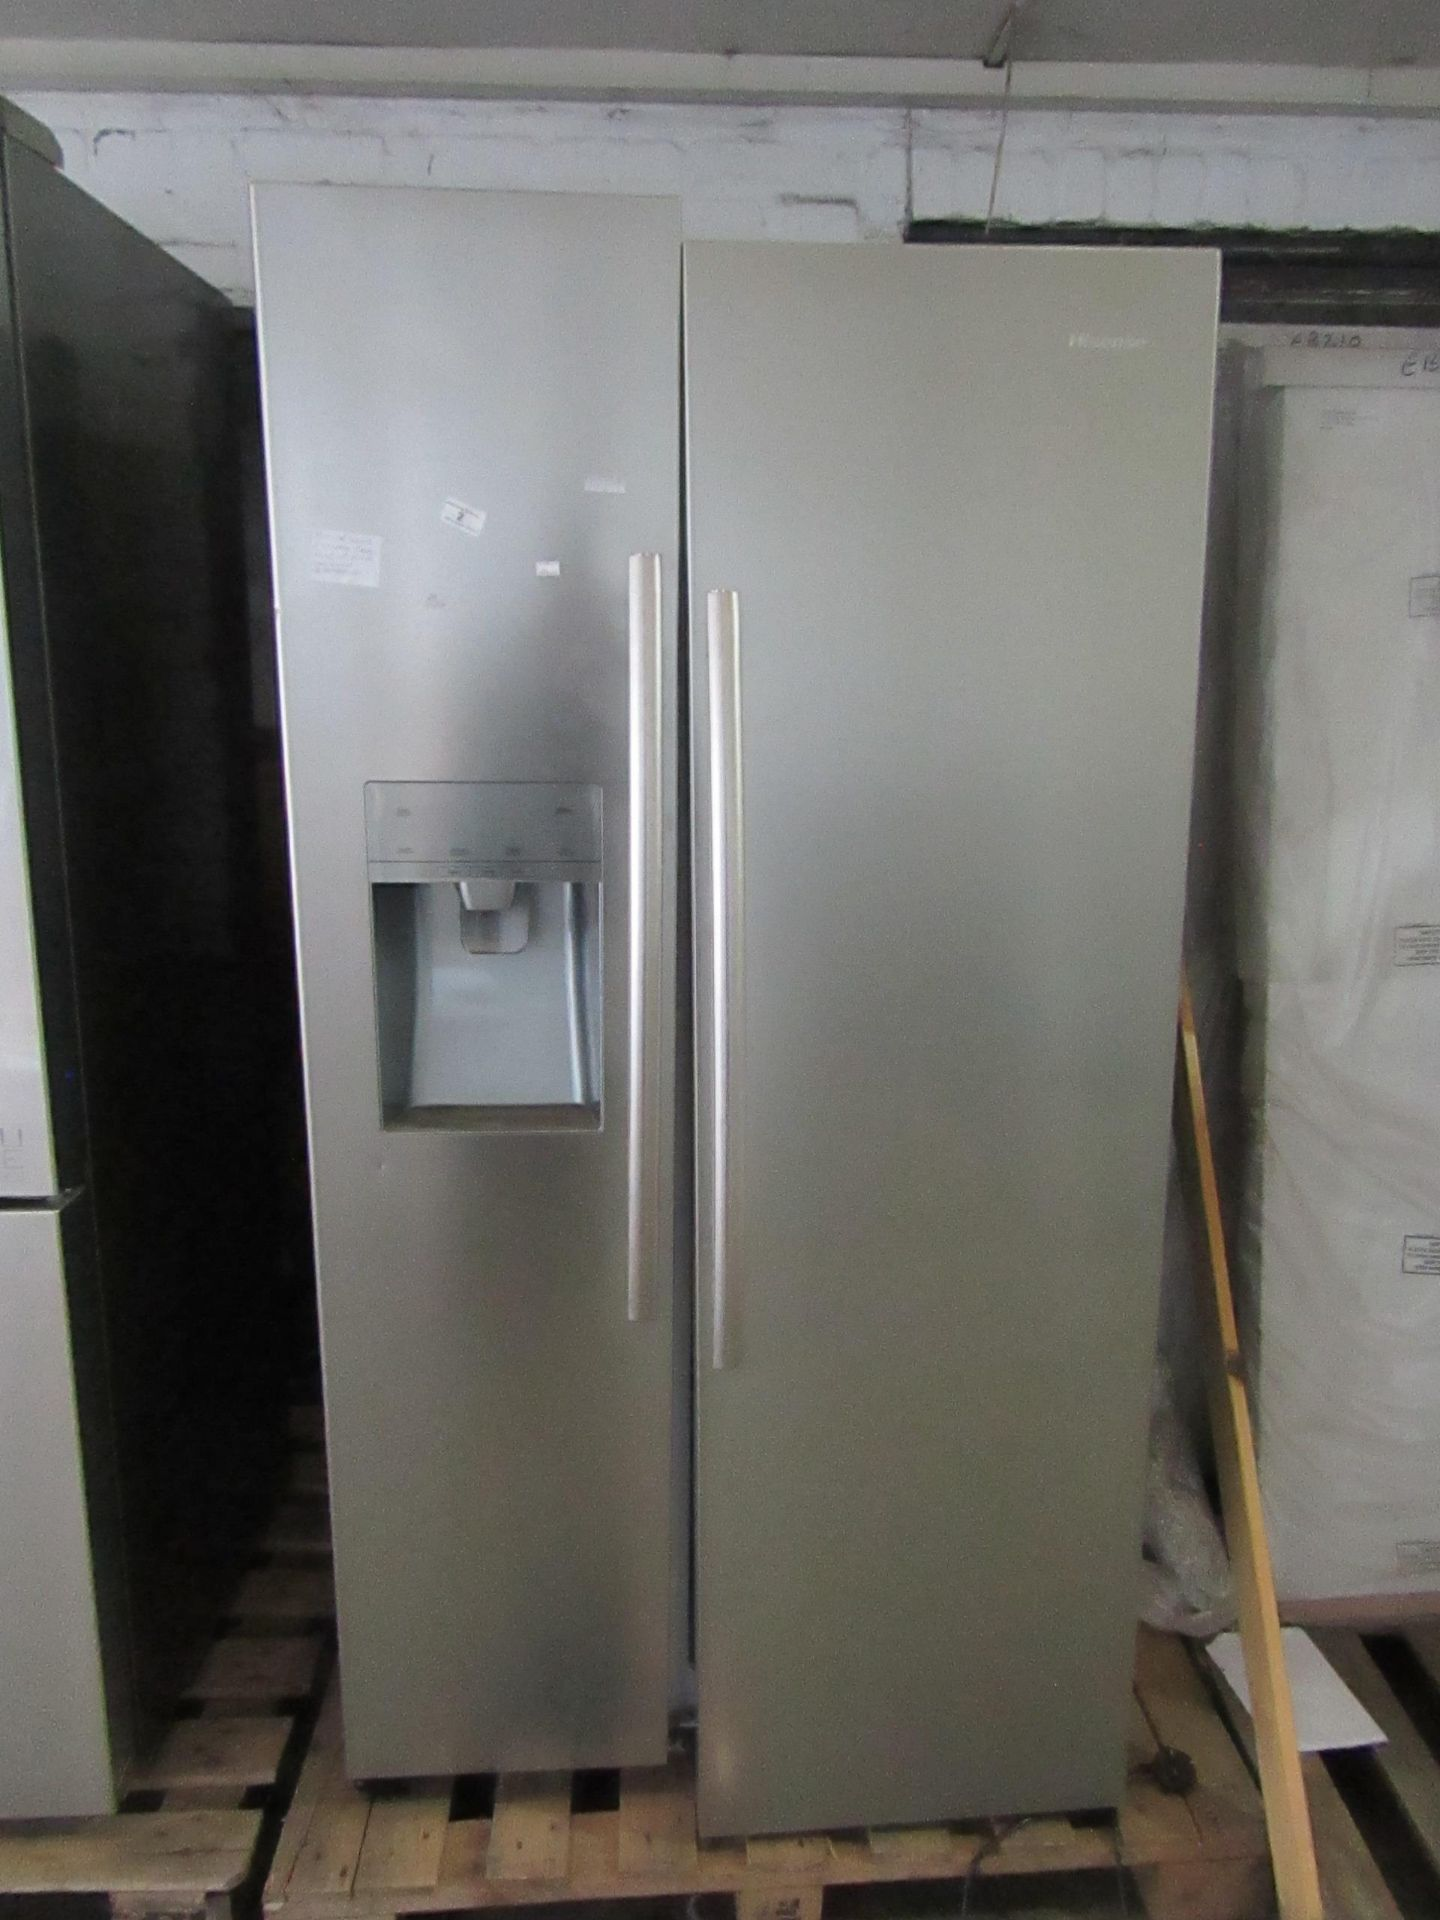 Hisense American Styled stainless steel fridge Freezer - Powers on Unsure if gets cold inside Due to